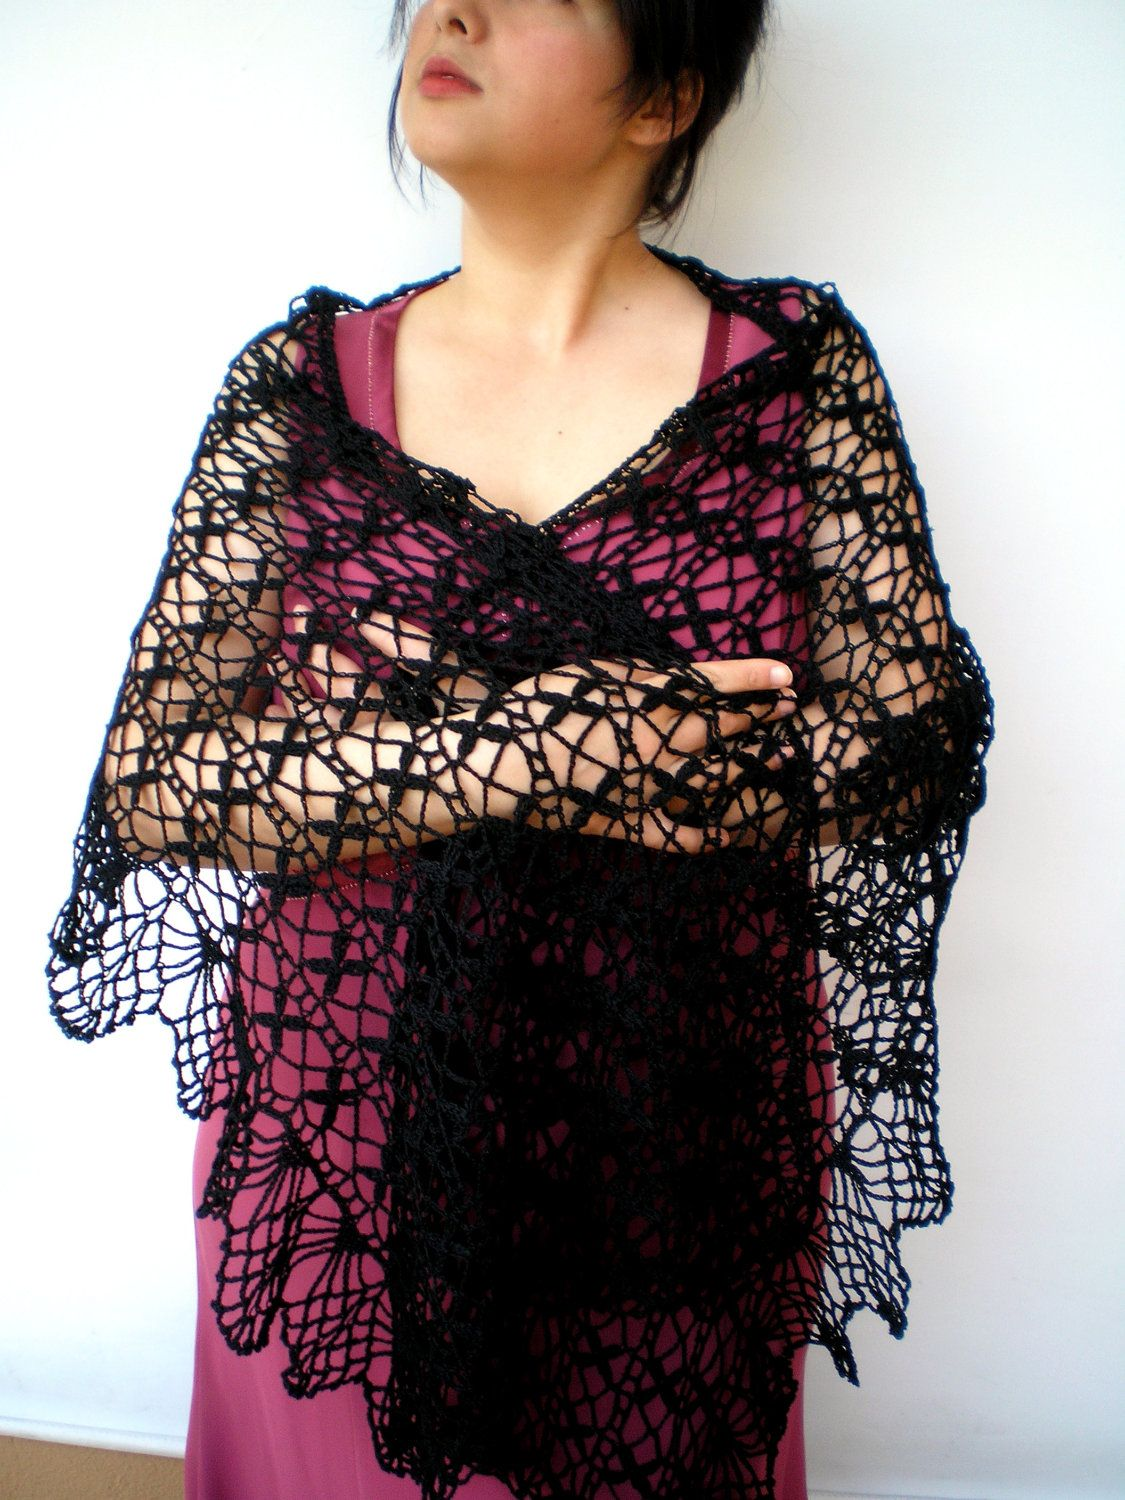 Dark Lady Stole Special Cotton Wrap Scarf Crocheted by NonnaLia